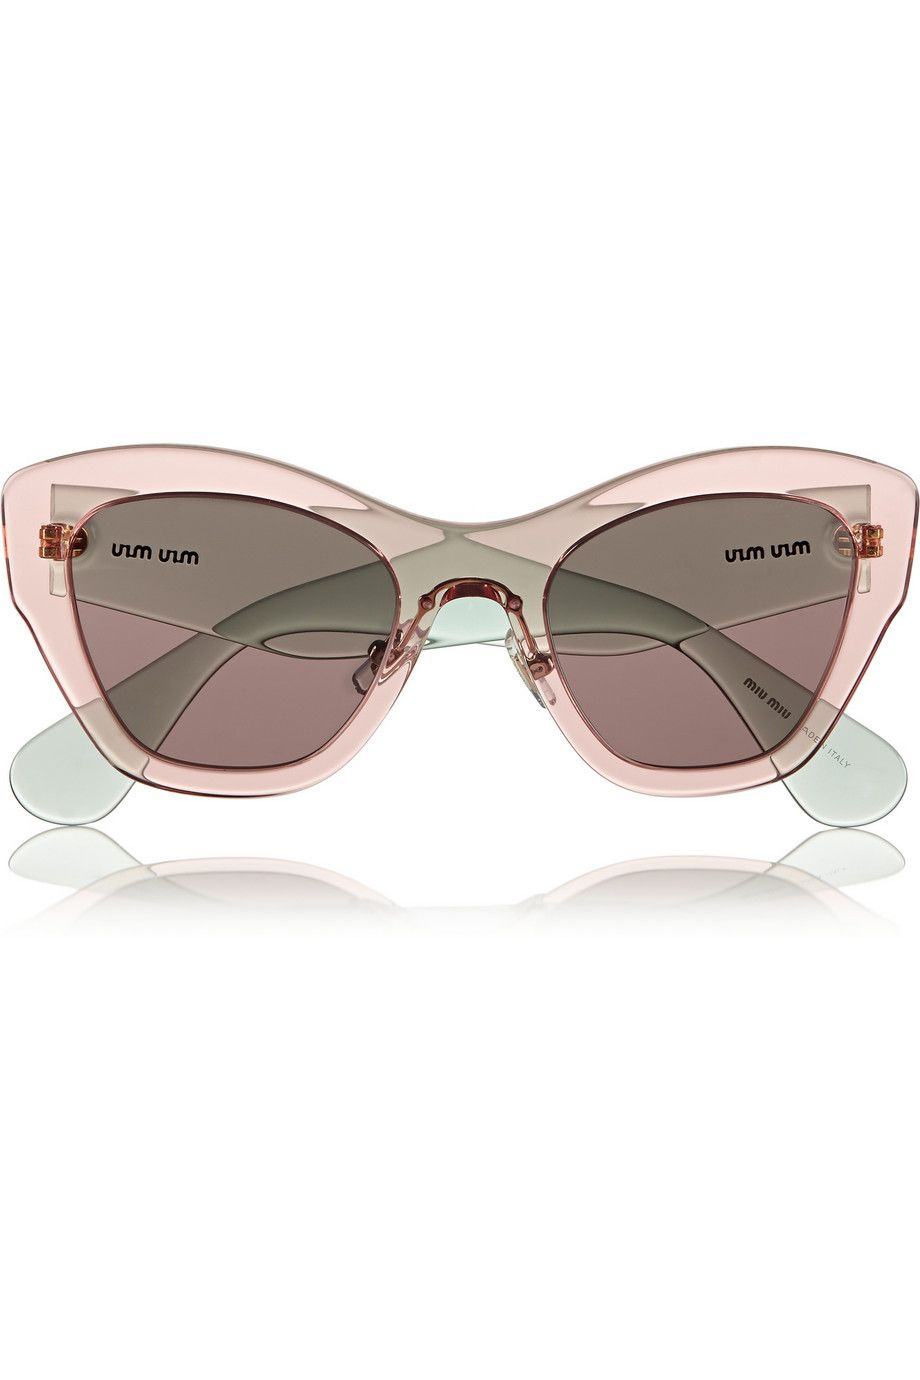 Le Meilleur Miu Miu Two Tone Cat Eye Acetate Sunglasses Net A Ce Mois Ci